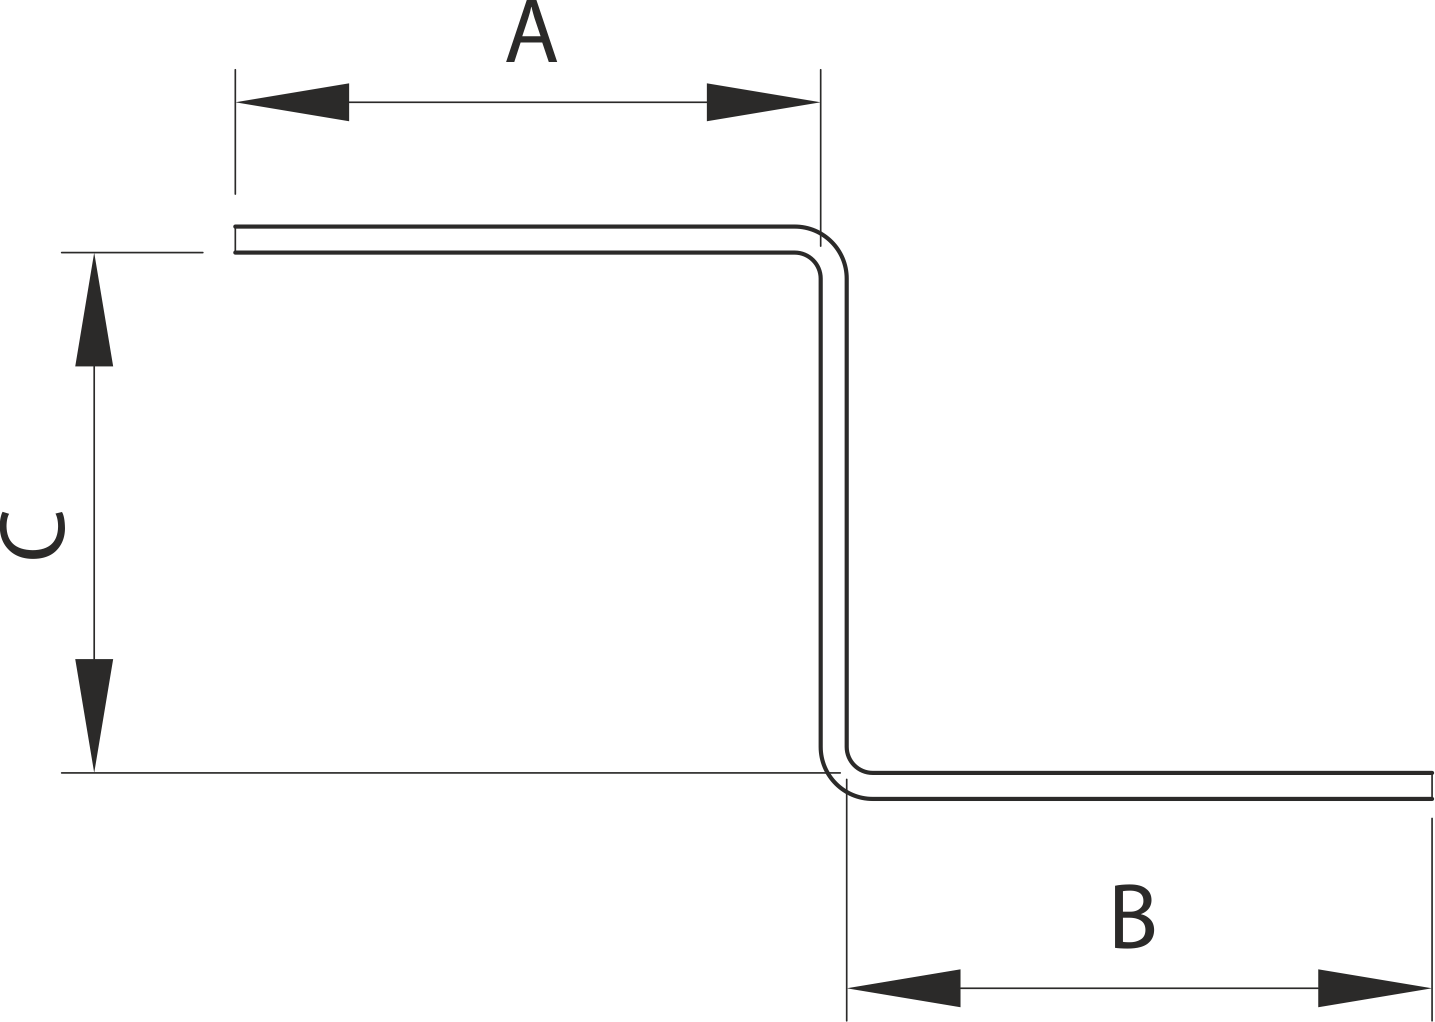 Auxiliary sections Z